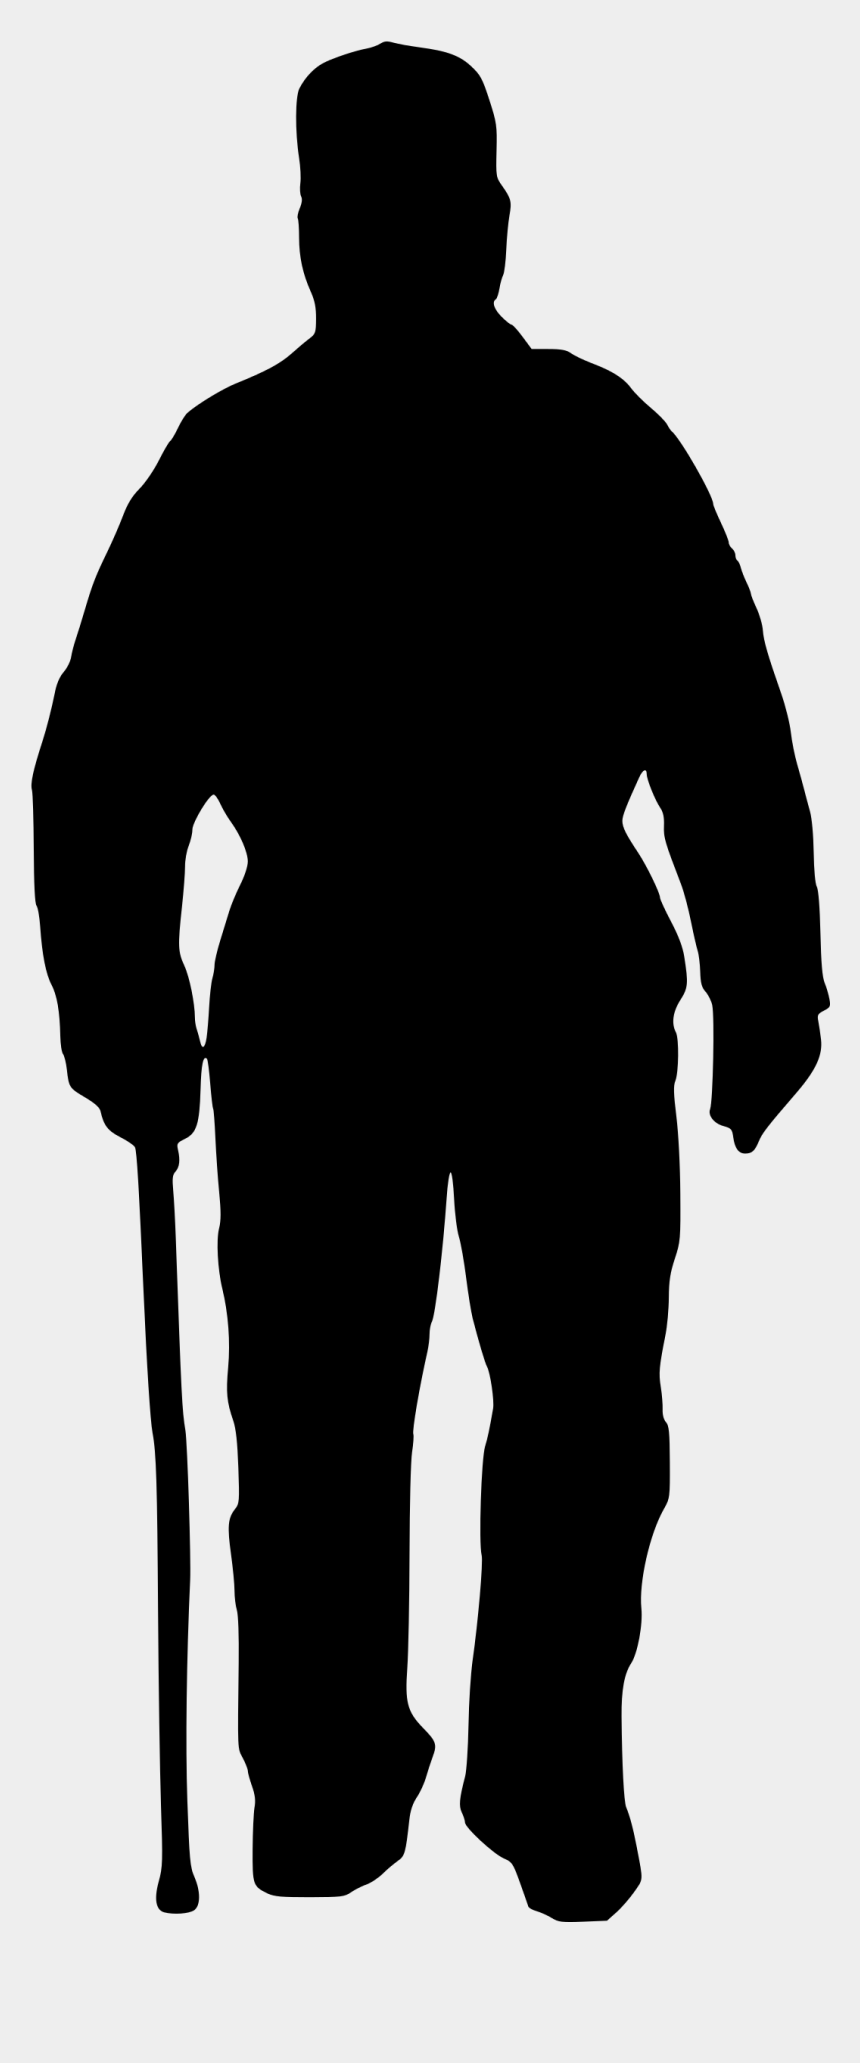 old man clipart, Cartoons - Silhouette Of Old Man - Men Black Png